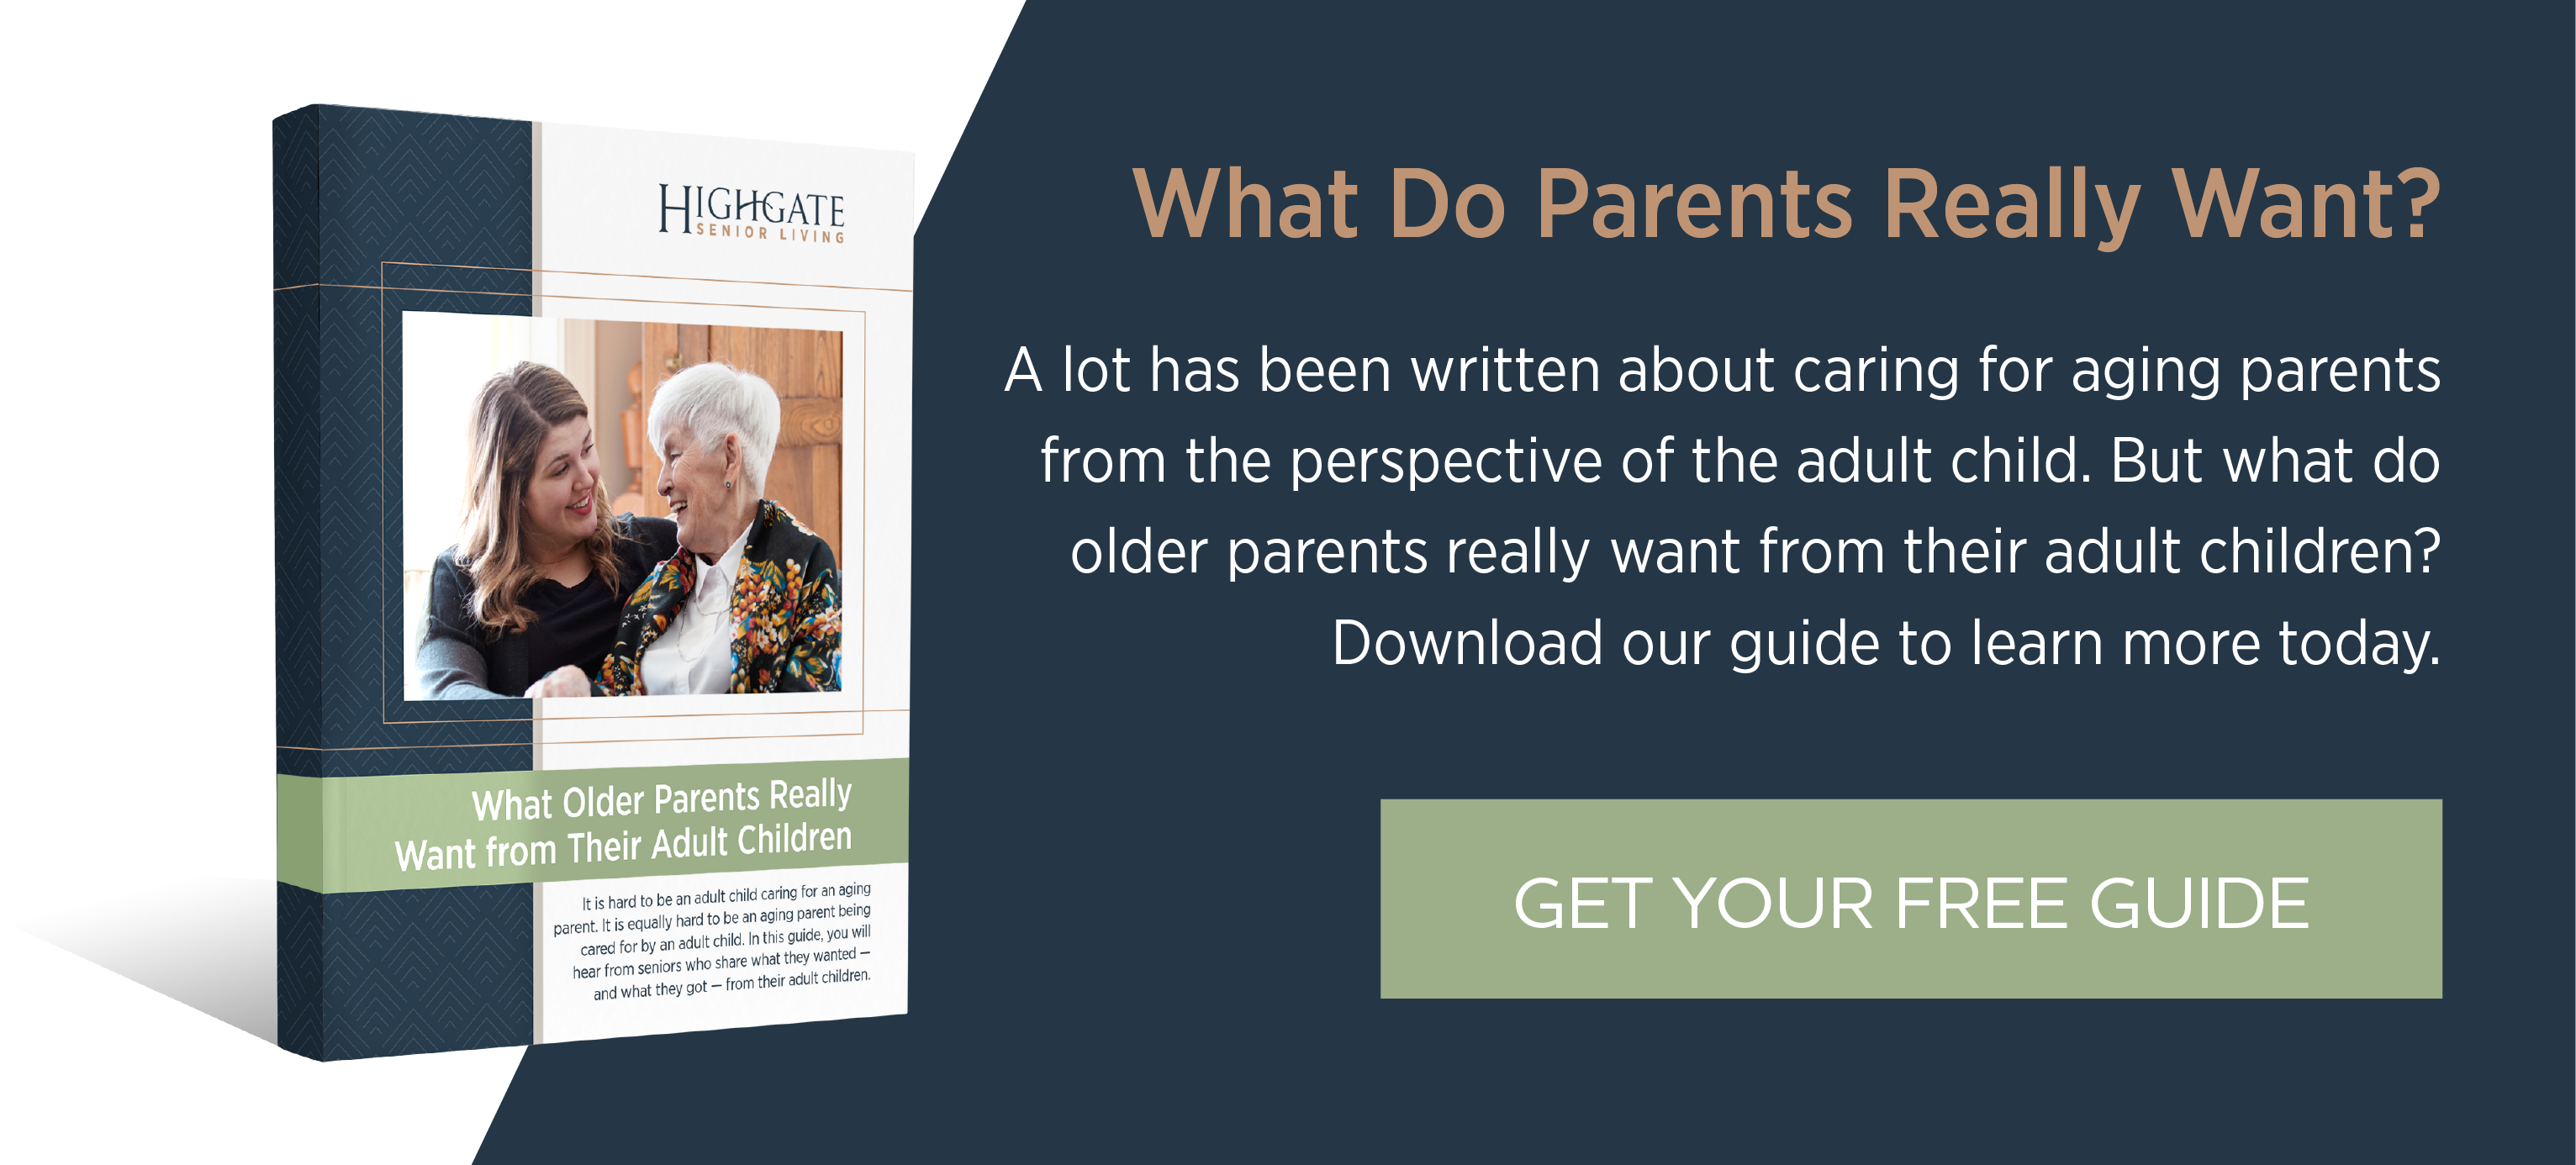 What Older Parents Really Want from Their Adult